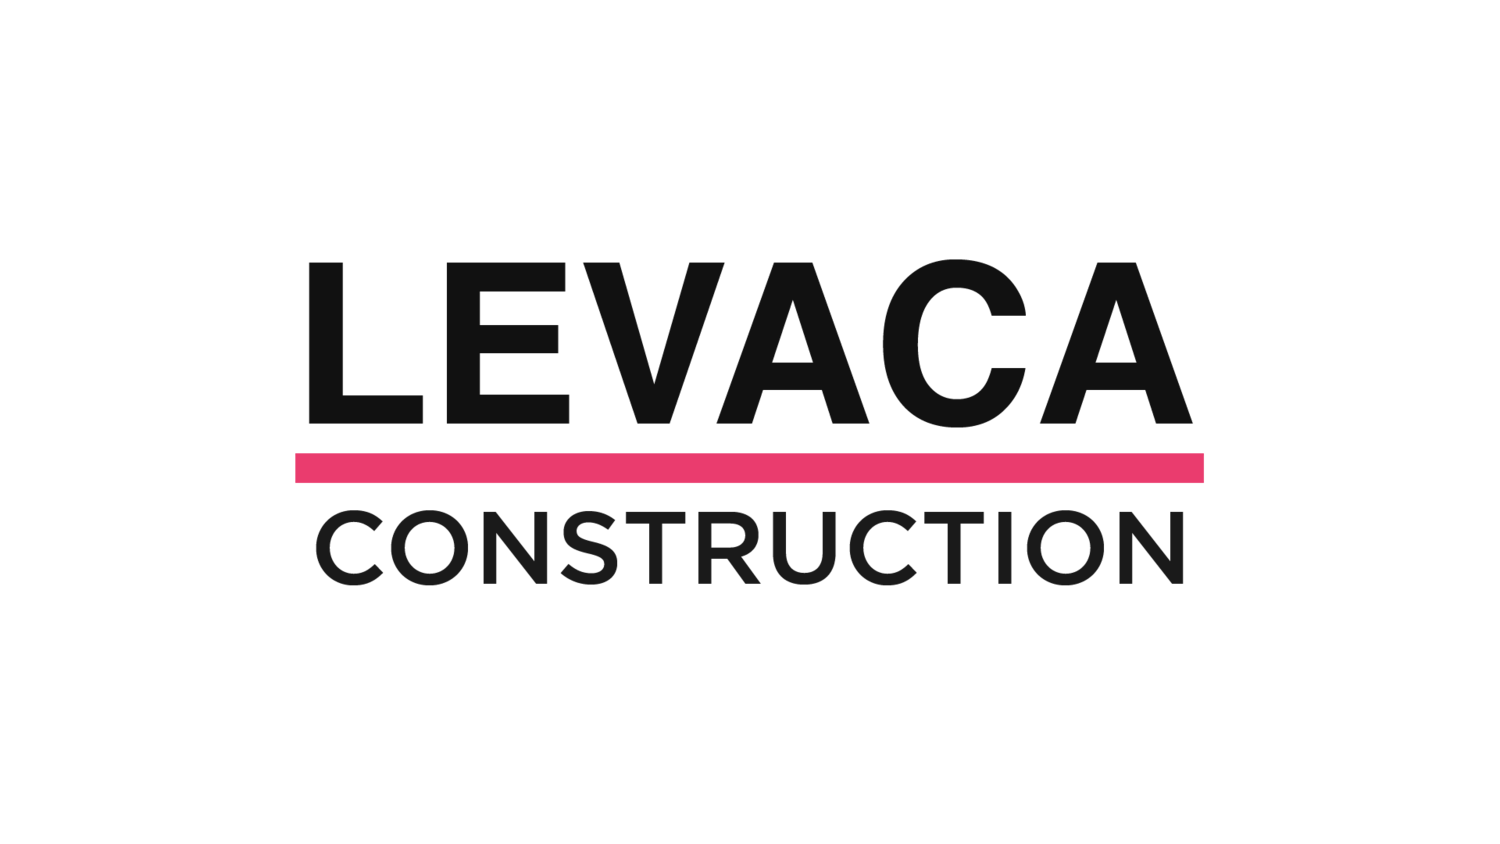 LeVaca Construction